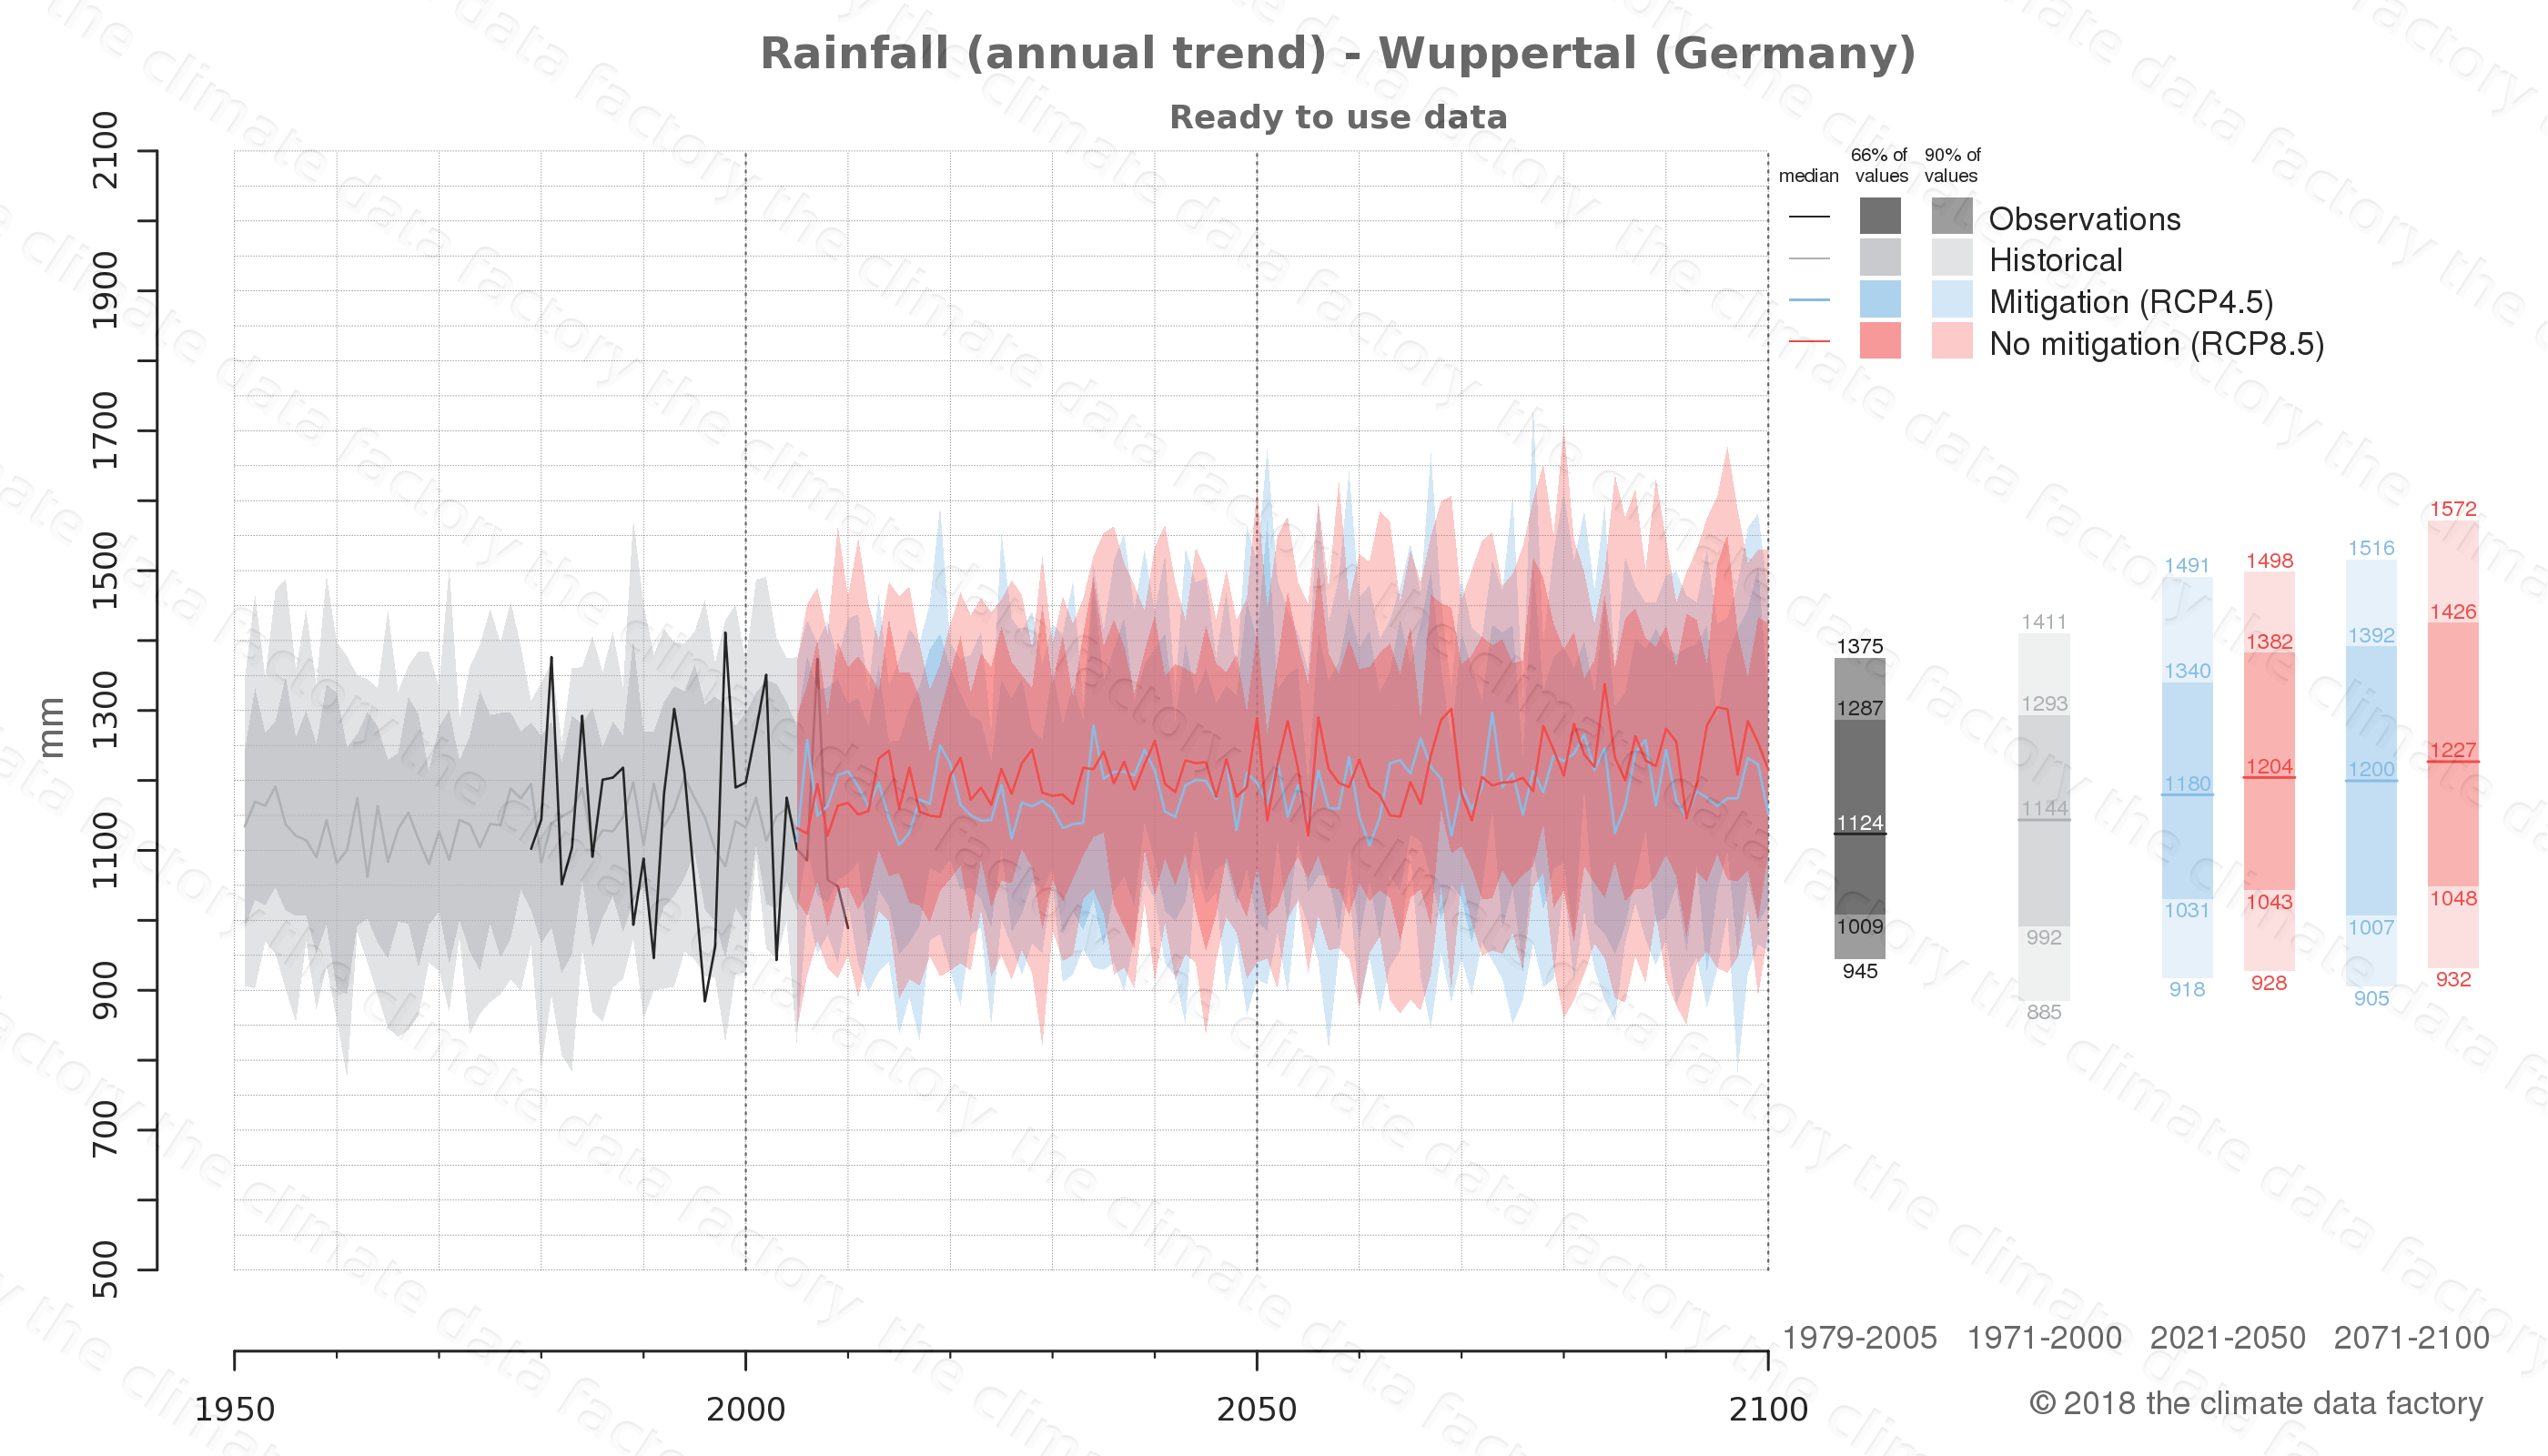 climate change data policy adaptation climate graph city data rainfall wuppertal germany